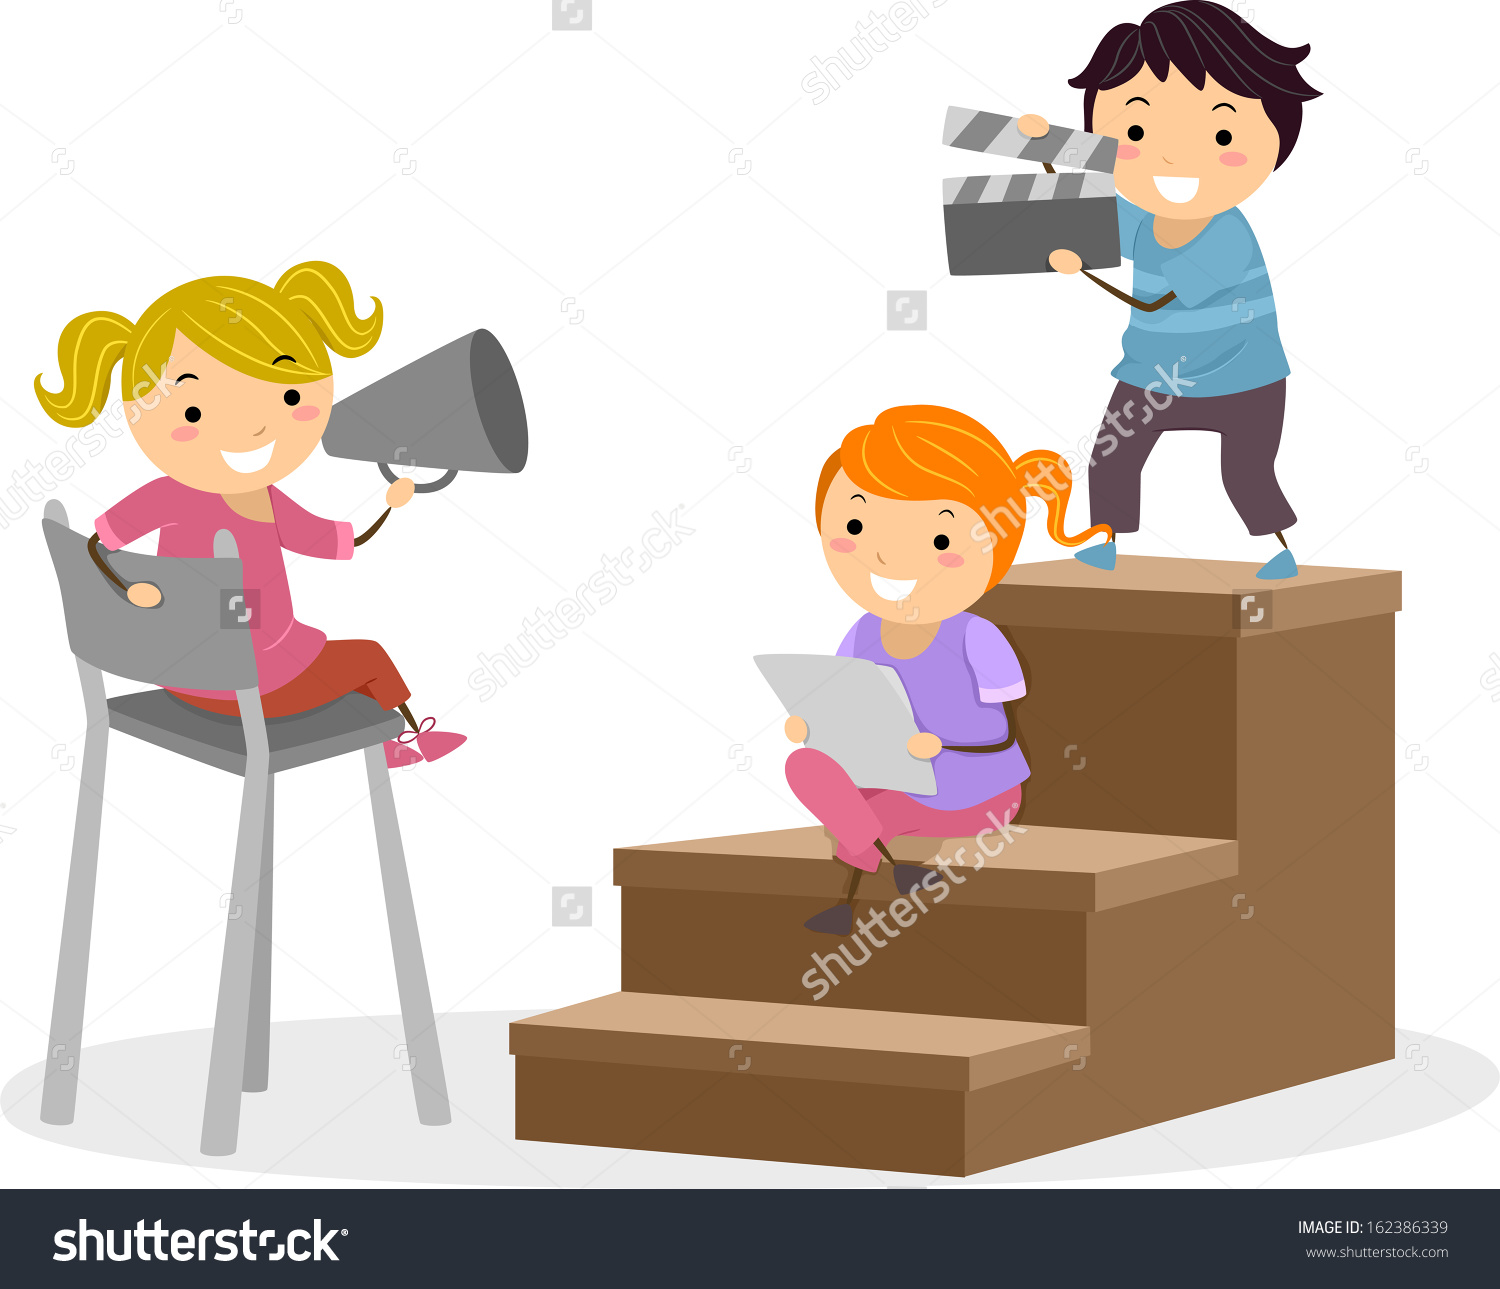 collection of script. Acting clipart animated